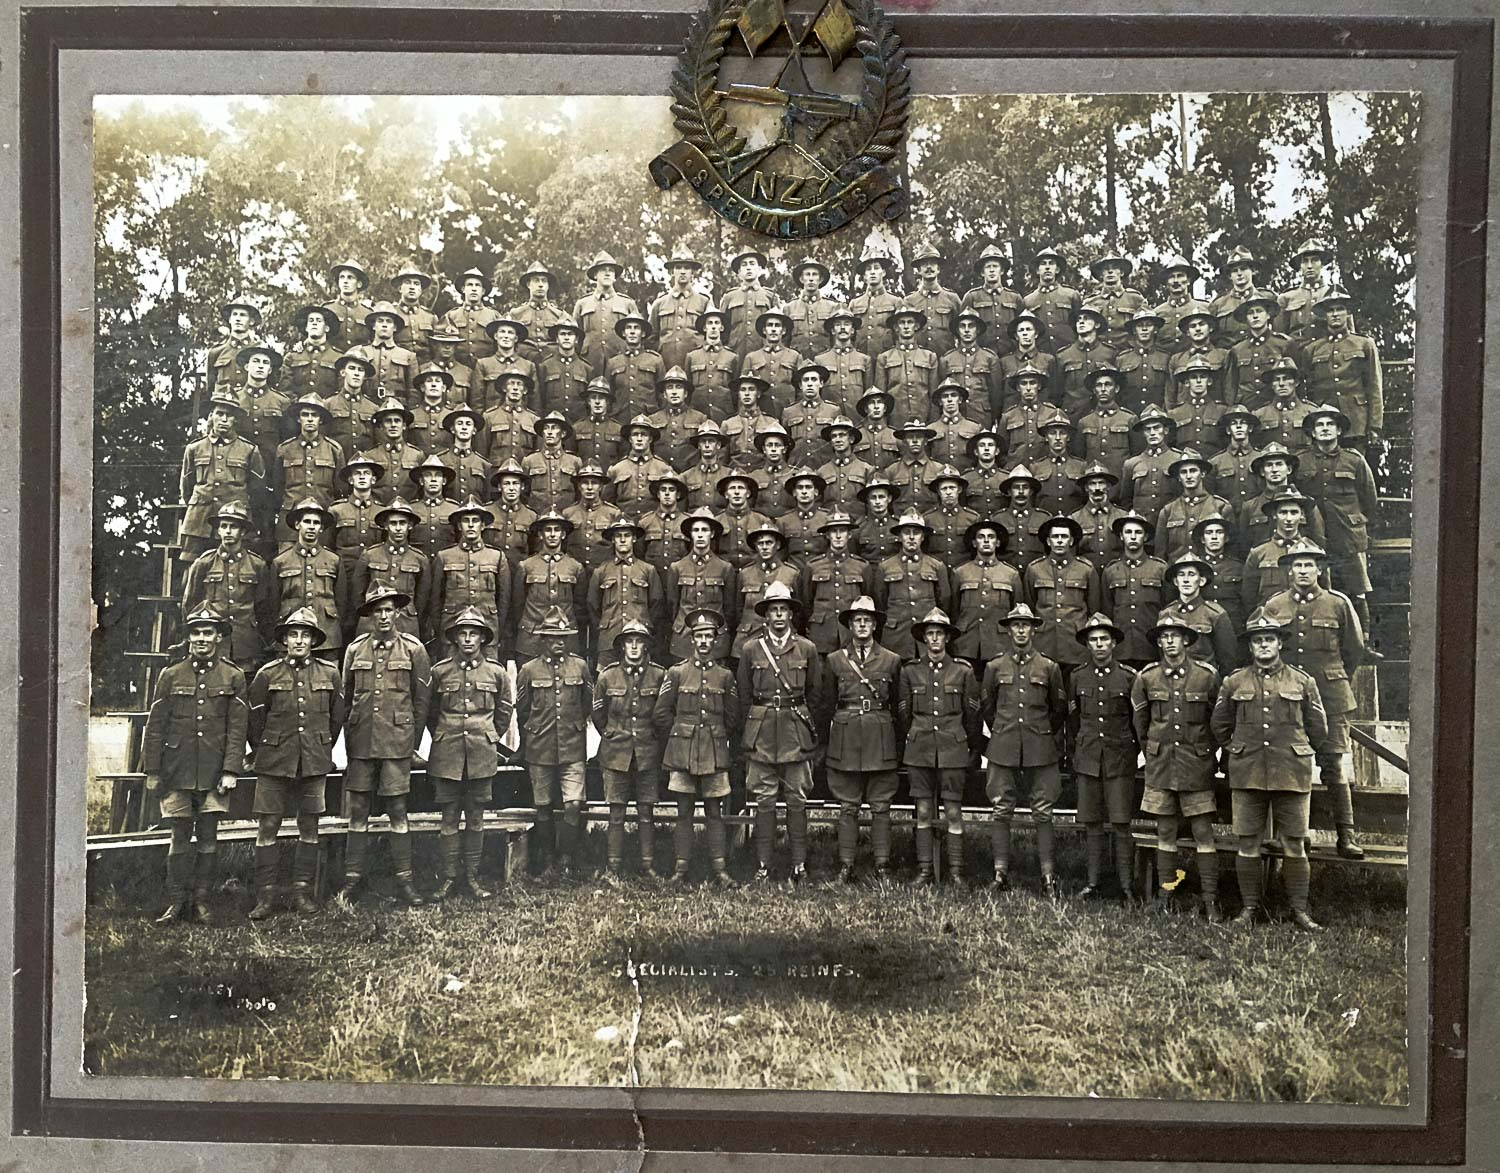 NZ Specialists, 25th Reinforcements, NZ Expeditionary Forces. Featherston Military Camp, NZ. March 1917. Arthur Gordon Taylor, second row from top, fifth in from the left.